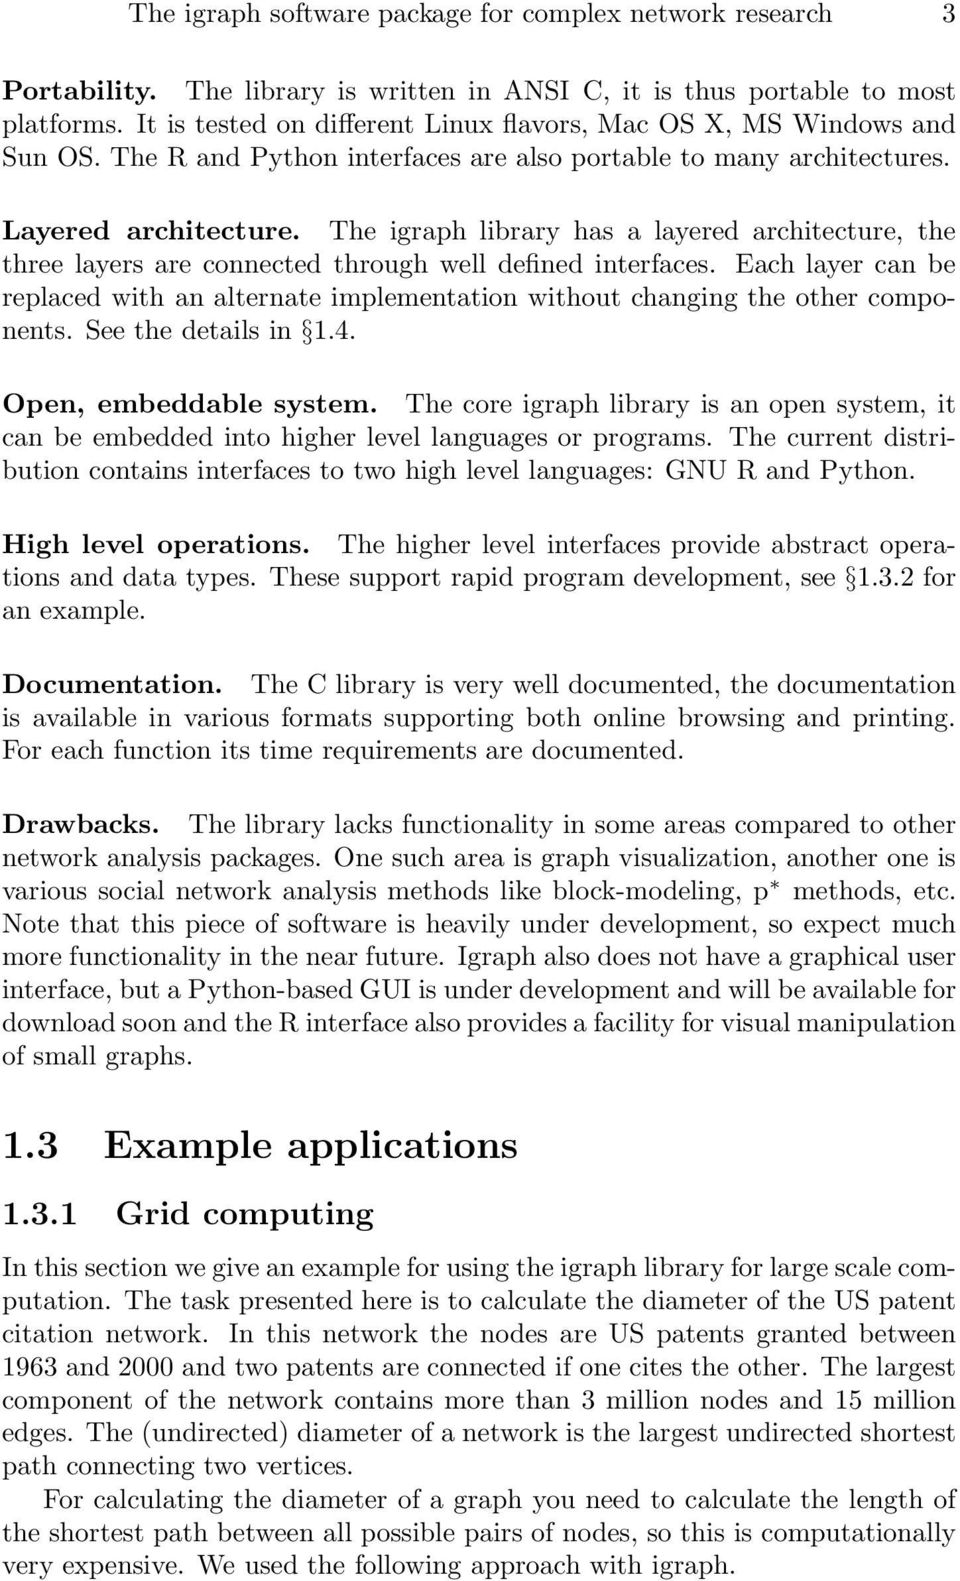 The igraph software package for complex network research - PDF